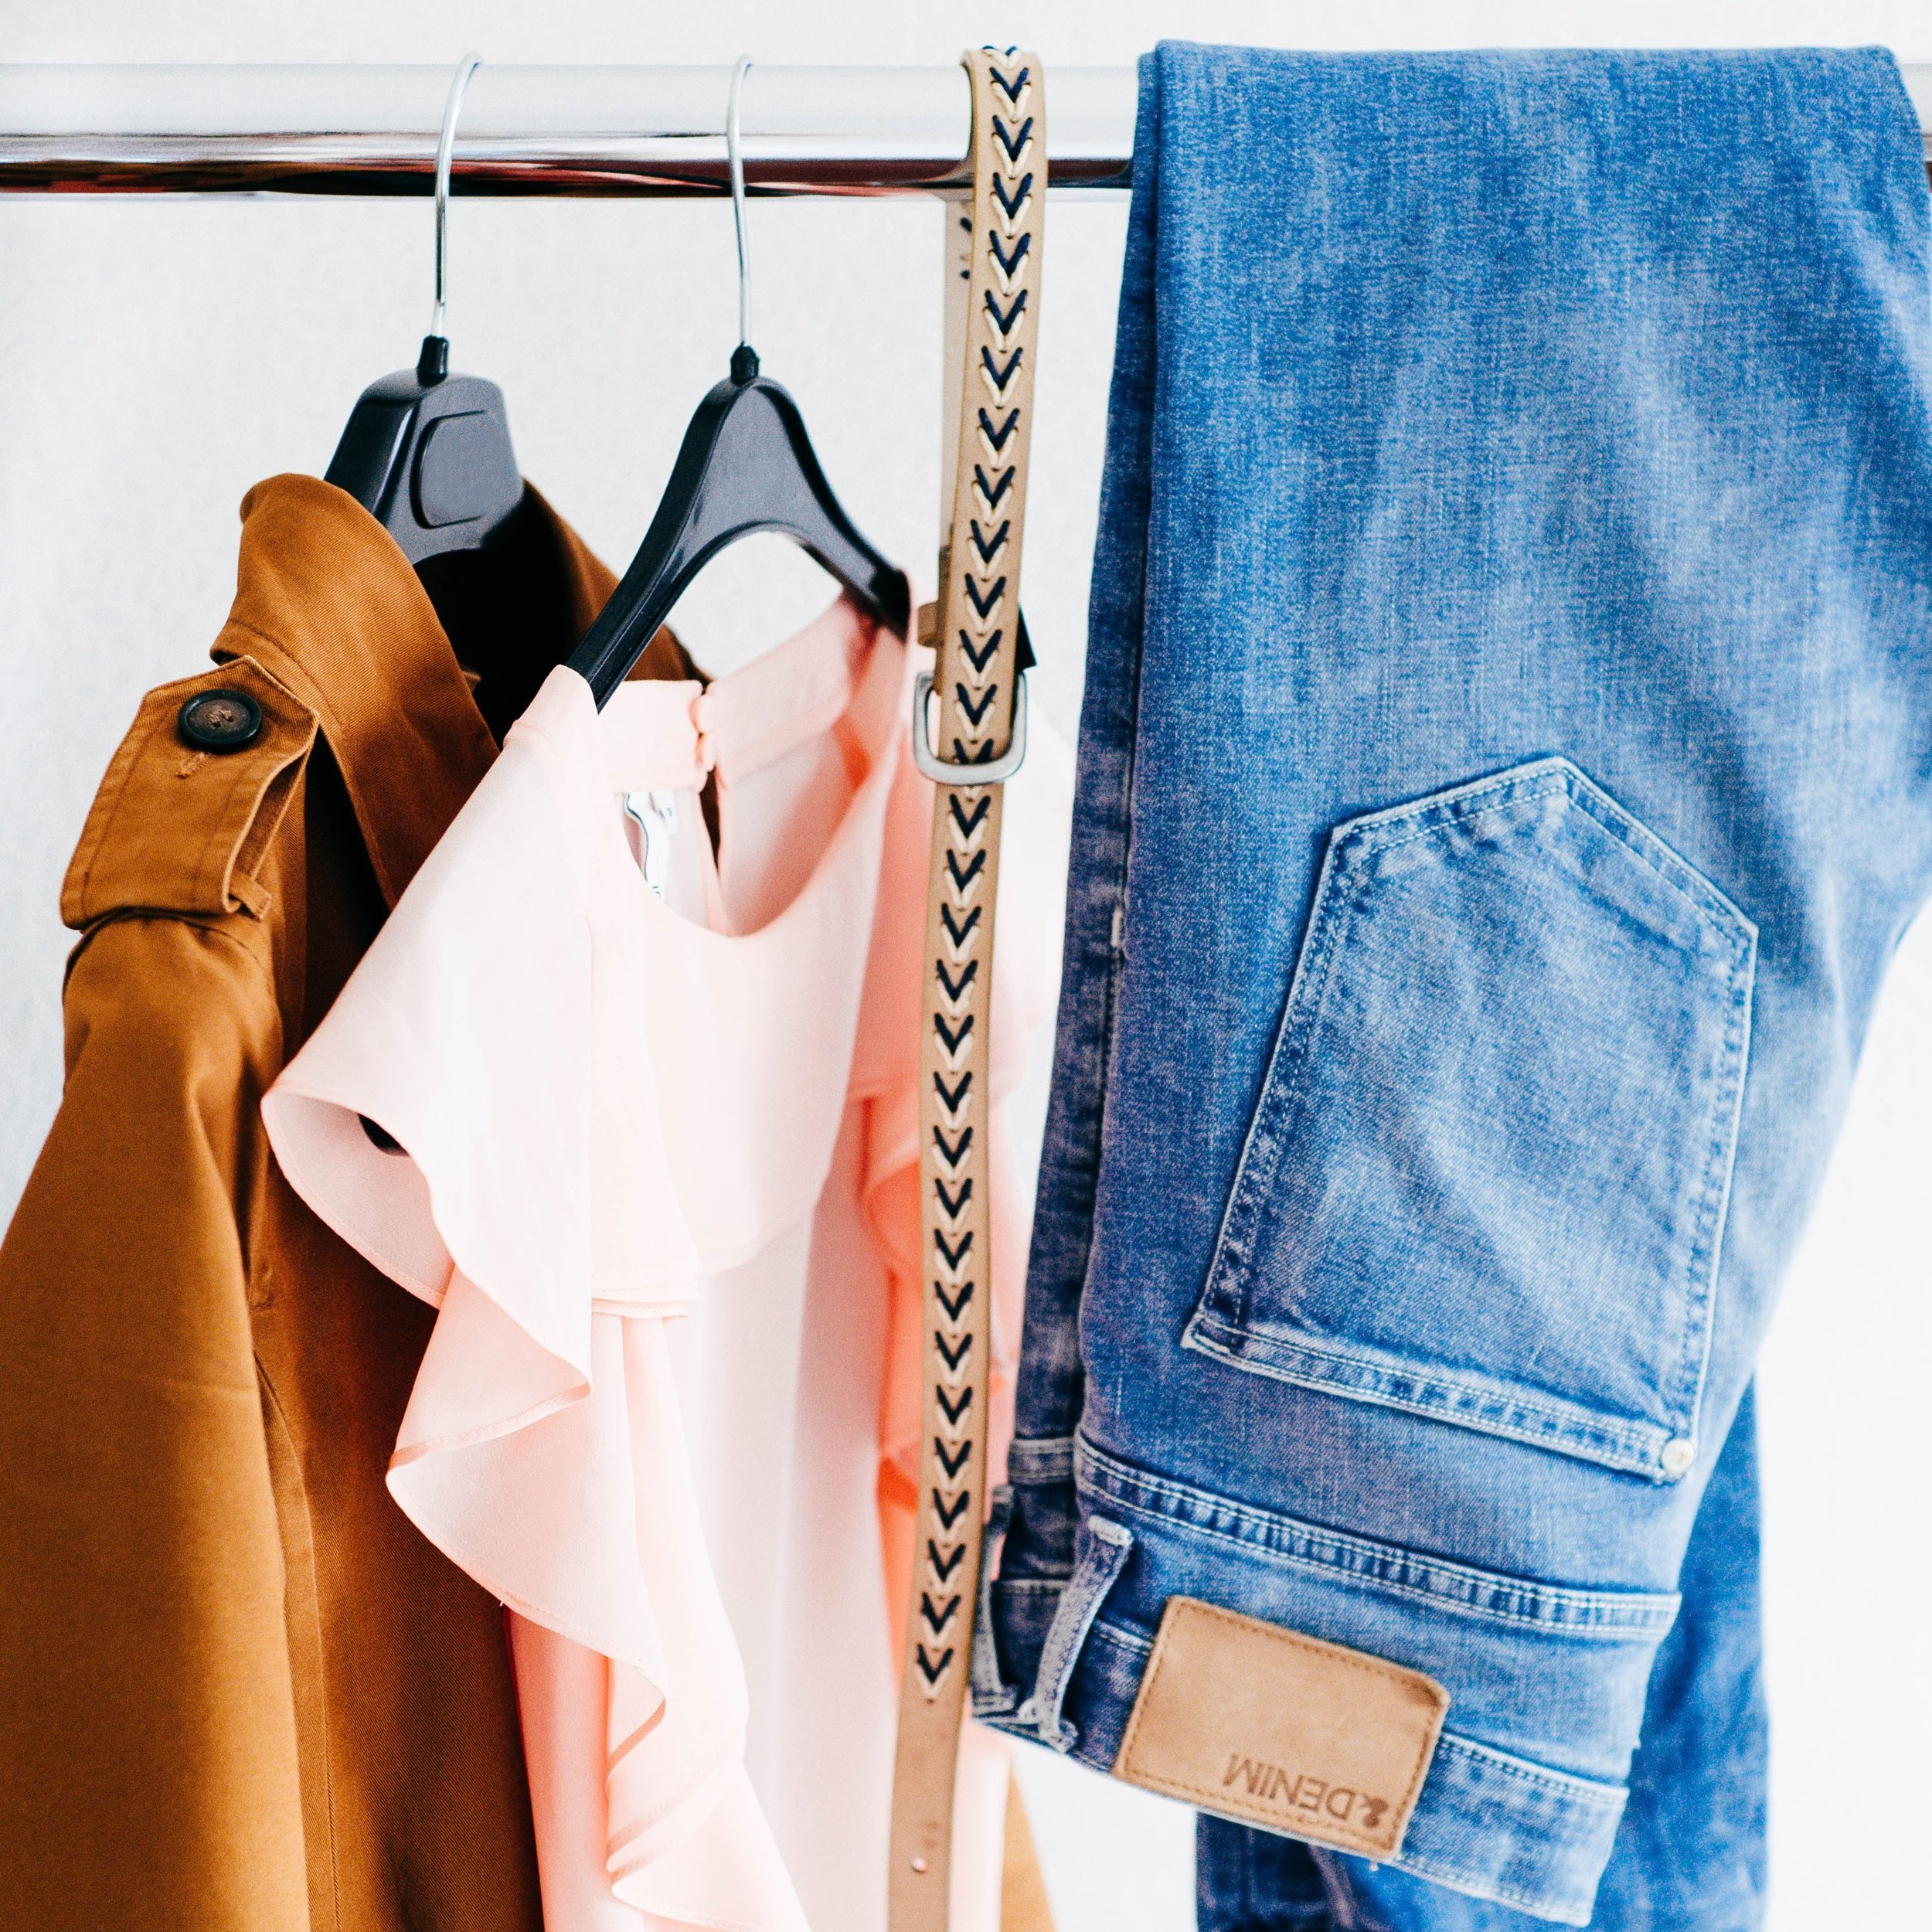 clothes-hanging-on-rack